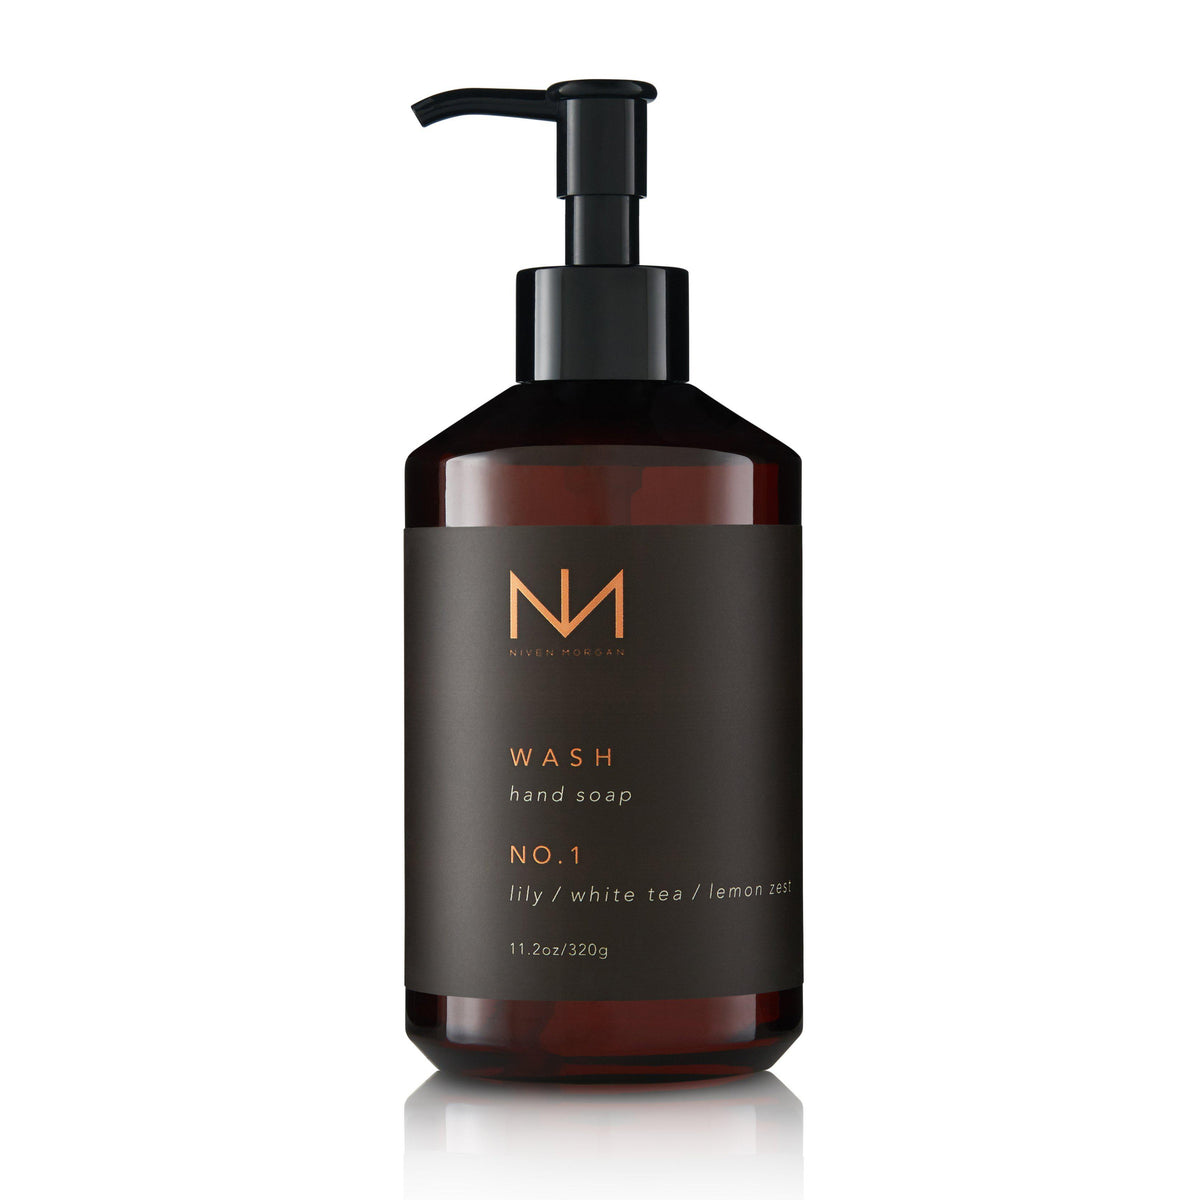 Niven Morgan Liquid Hand Soap No. 1-Niven Morgan-Oak Manor Fragrances